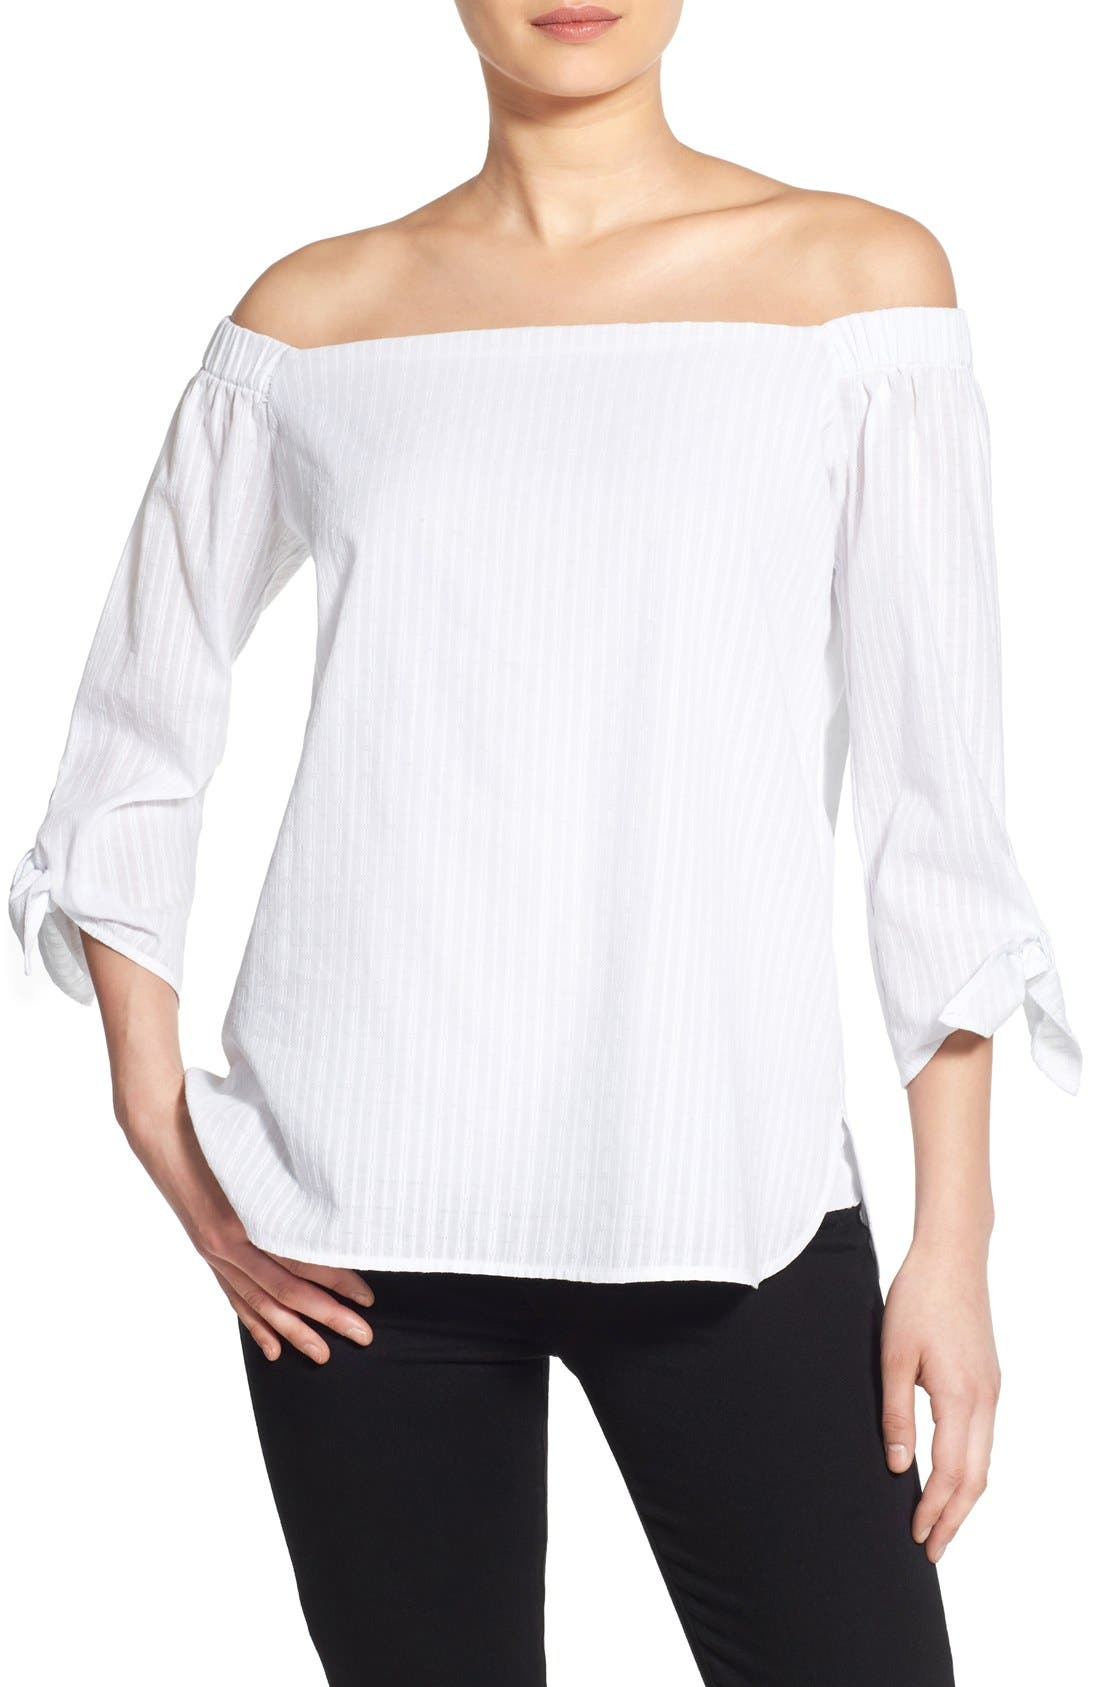 Alternate Image 1 Selected - Bailey 44 'Yarrow' Off the Shoulder Top